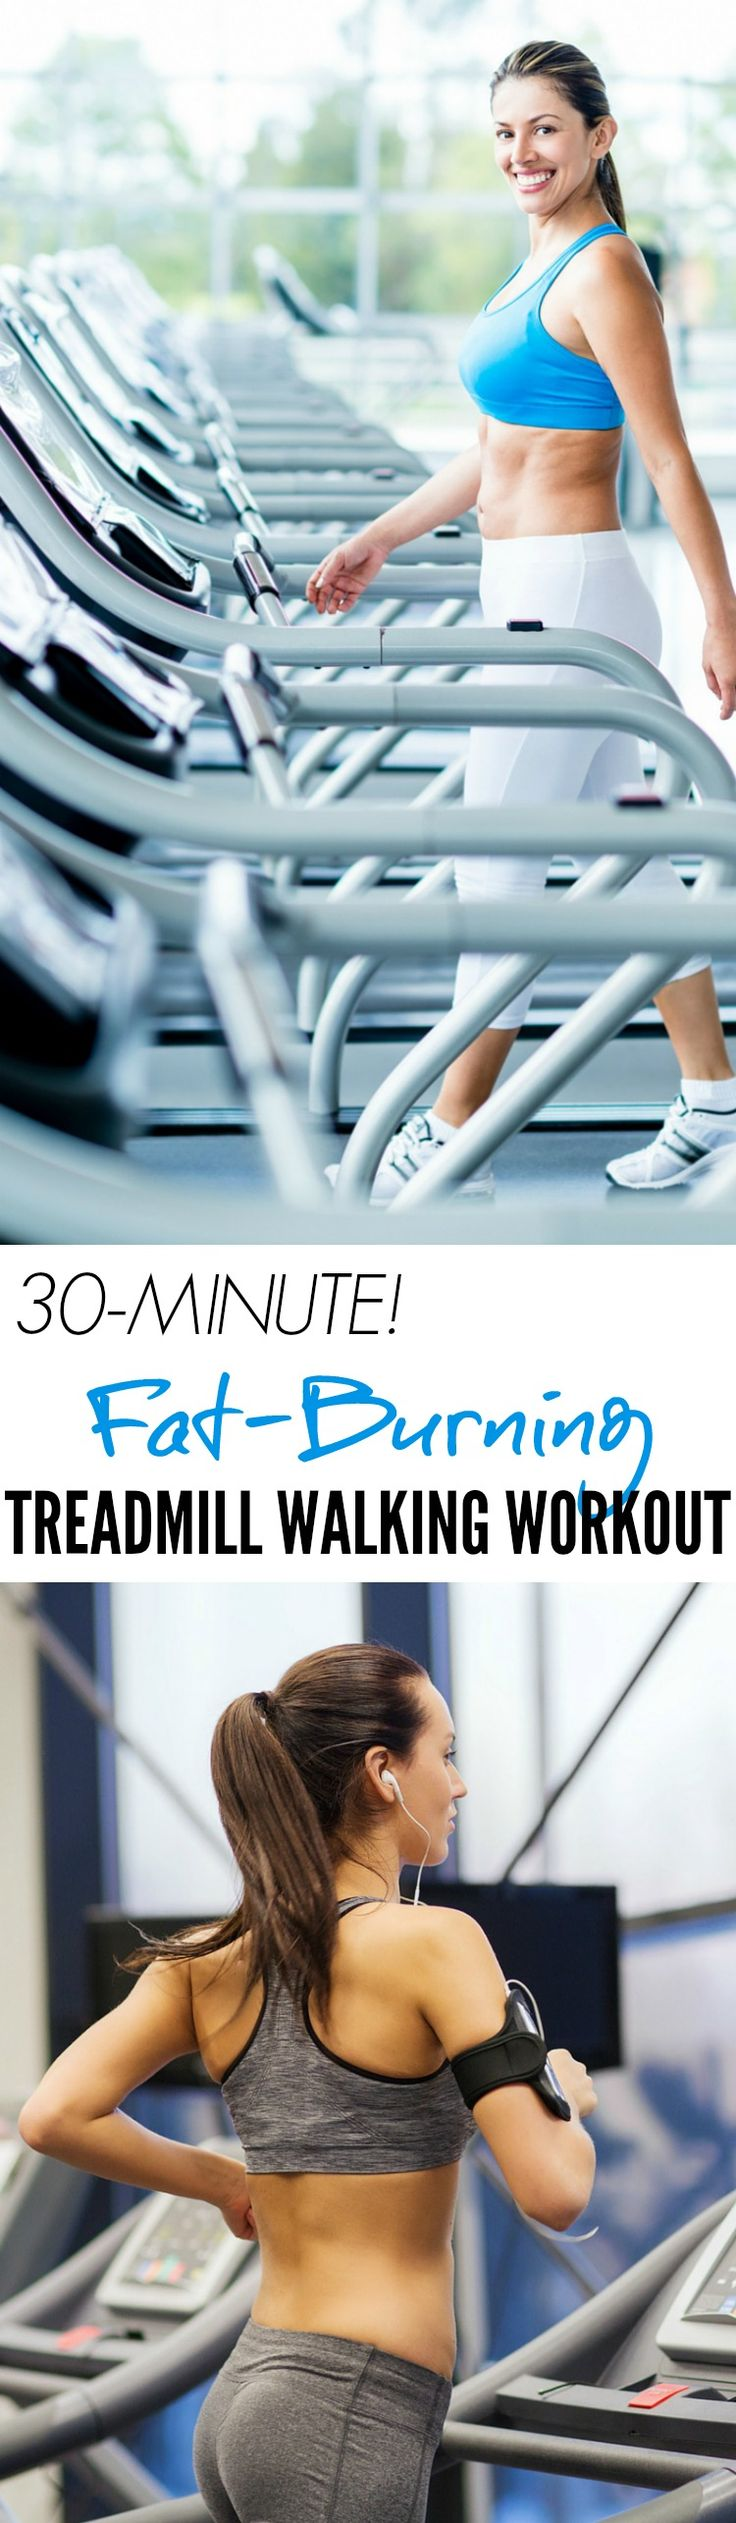 Best Diet Pills >> 30-Minute Fat-Blasting Treadmill Walking Workout | Treadmill walking workout, Burn calories fast ...